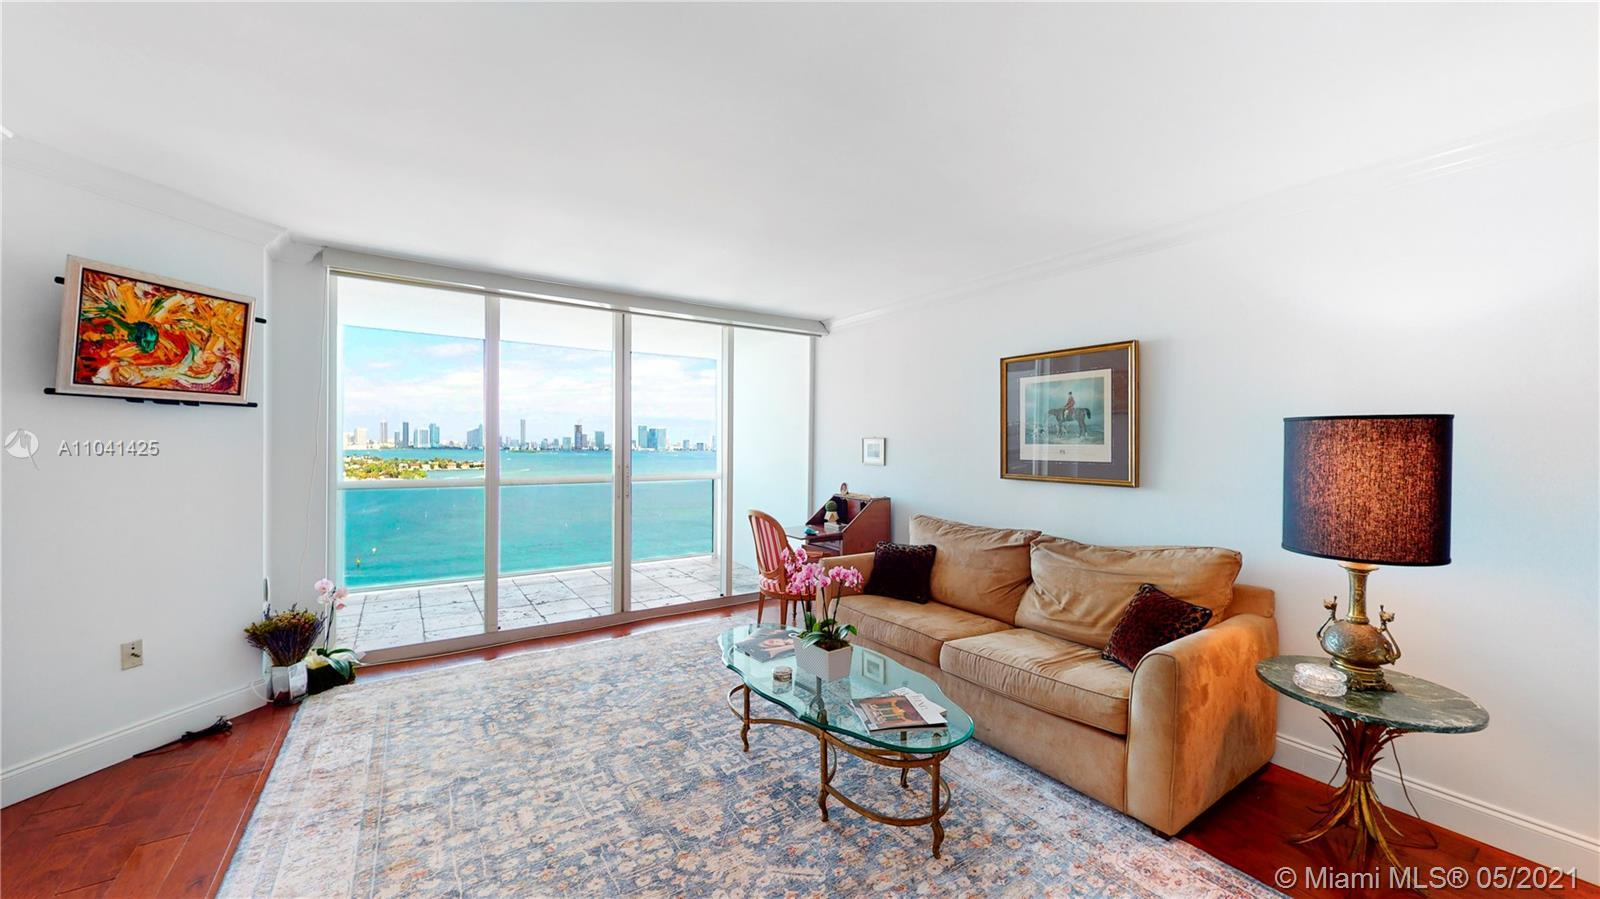 Rare opportunity to create your dream home from this 23rd floor west facing condo. Every room has sp